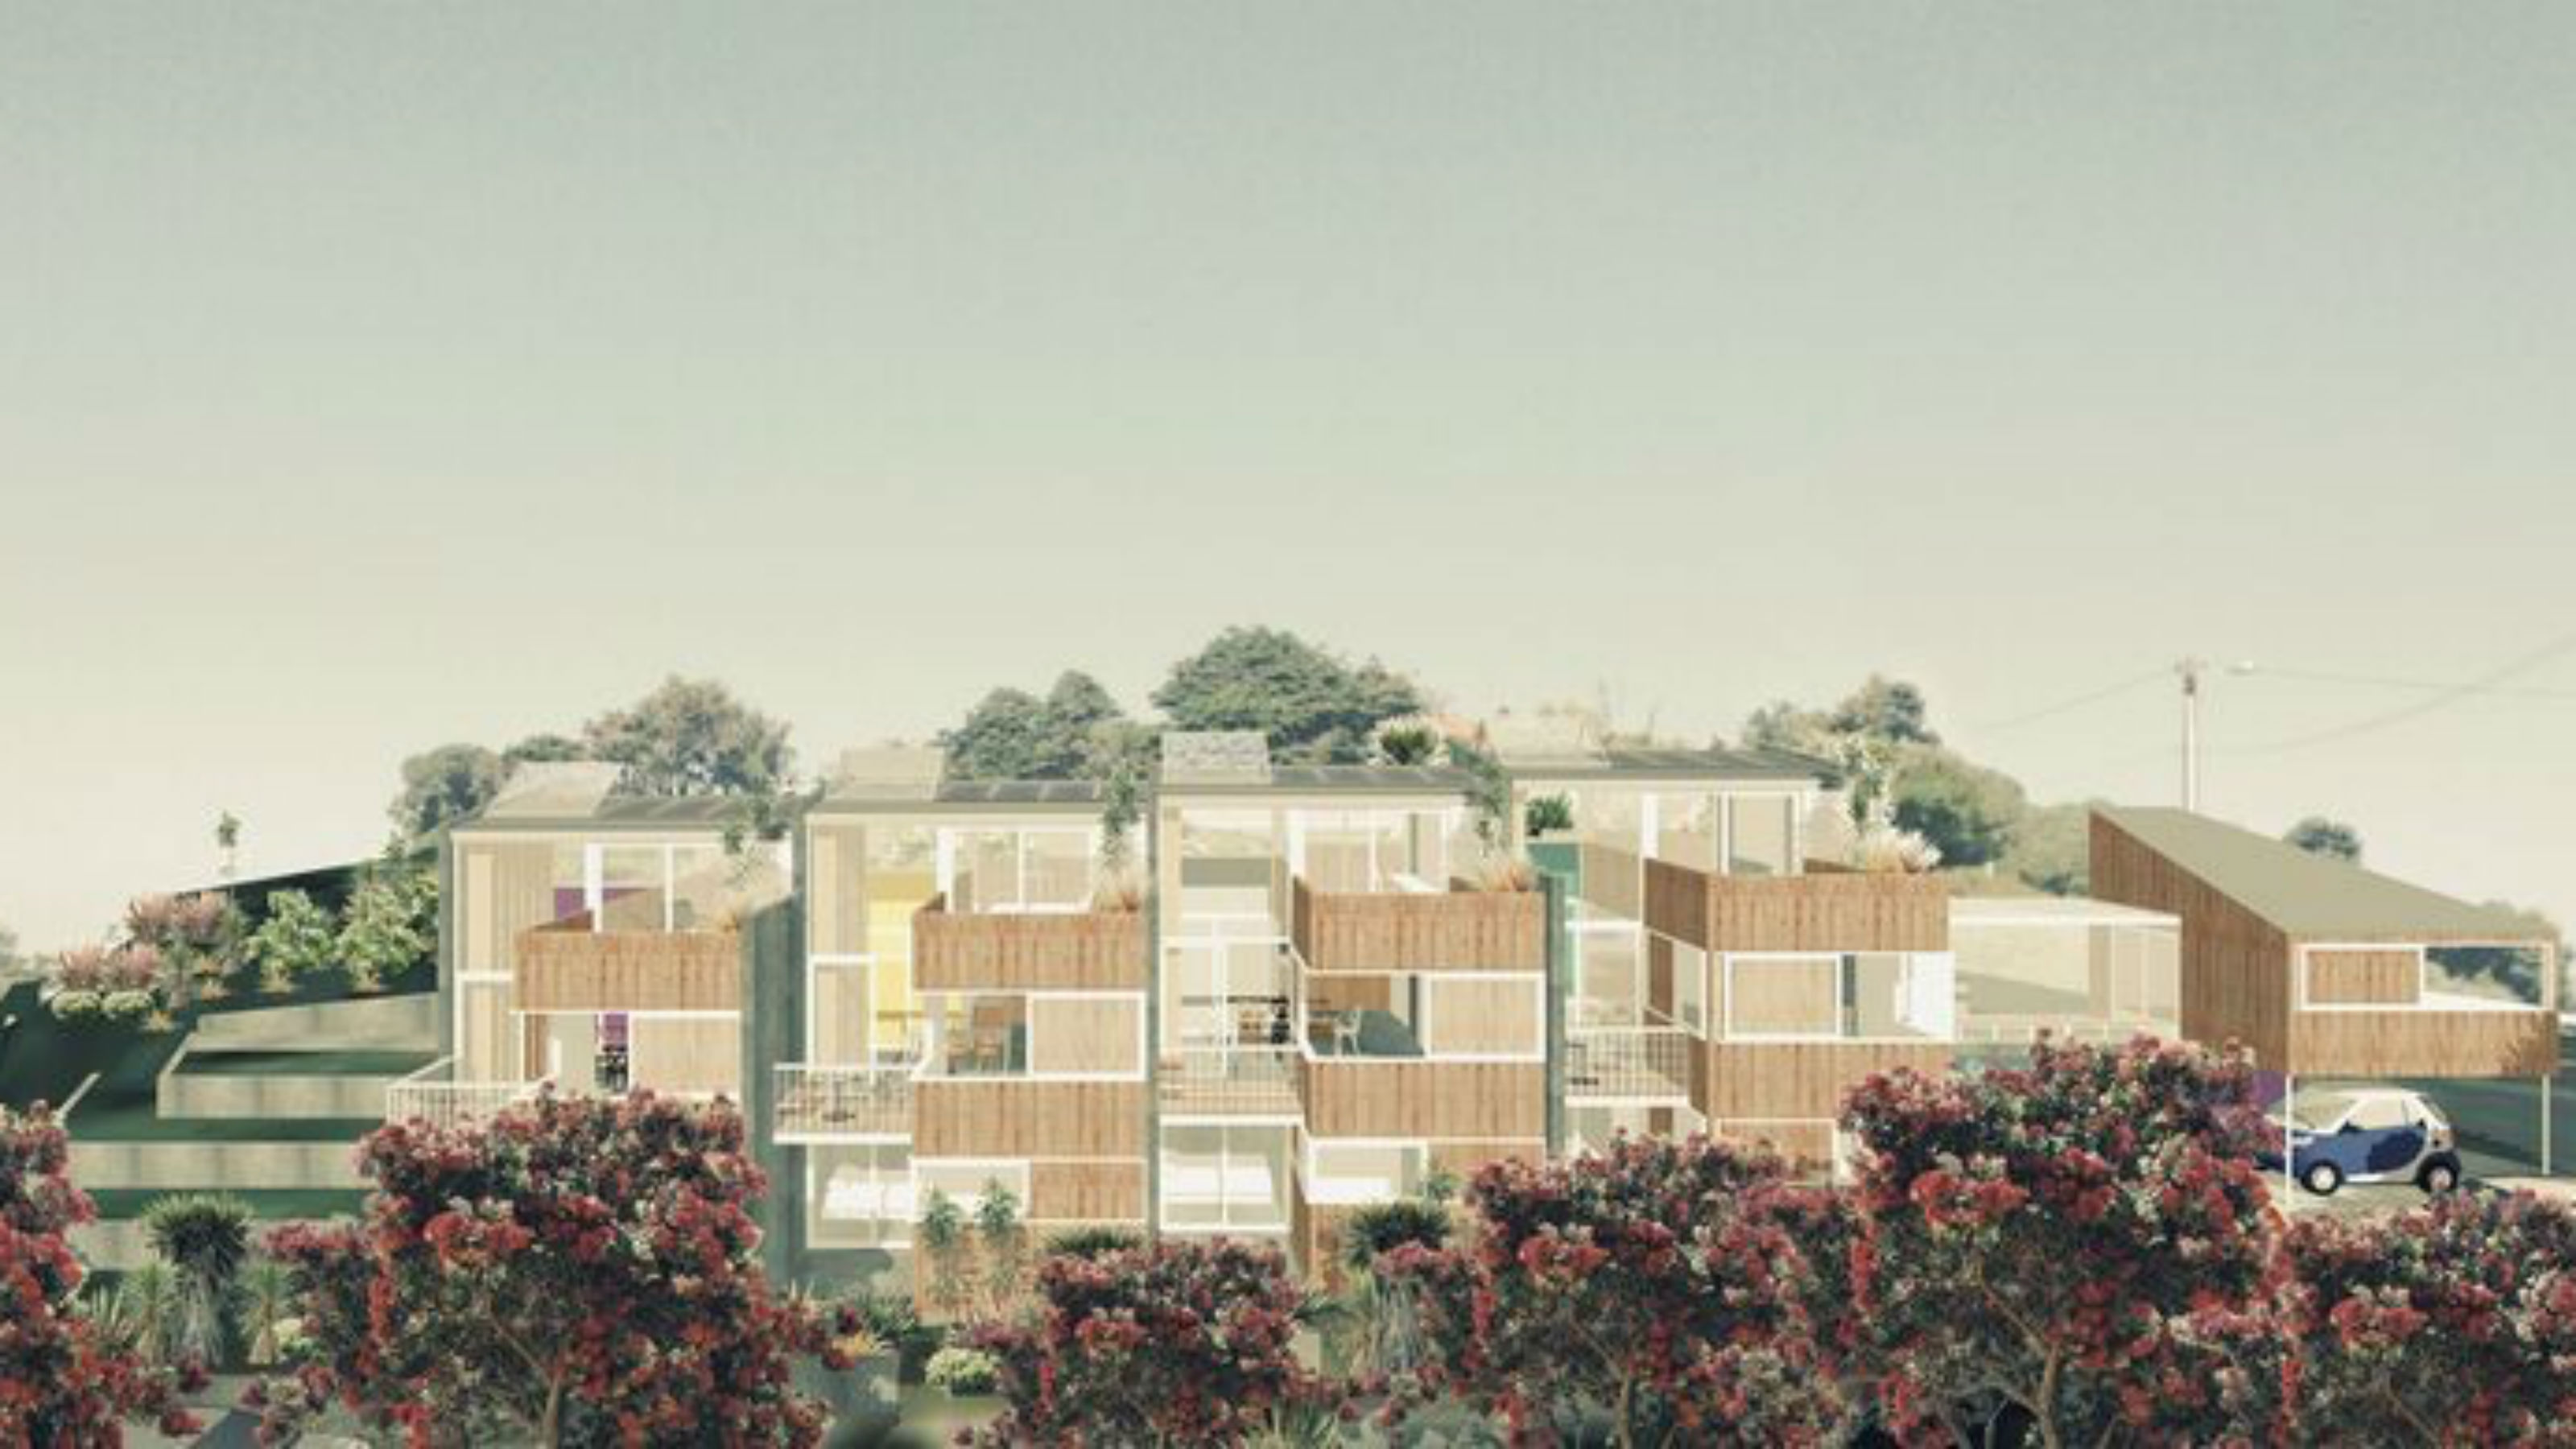 Conceptual view for an emerging Wellington CoHousing project by Spacecraft Architects